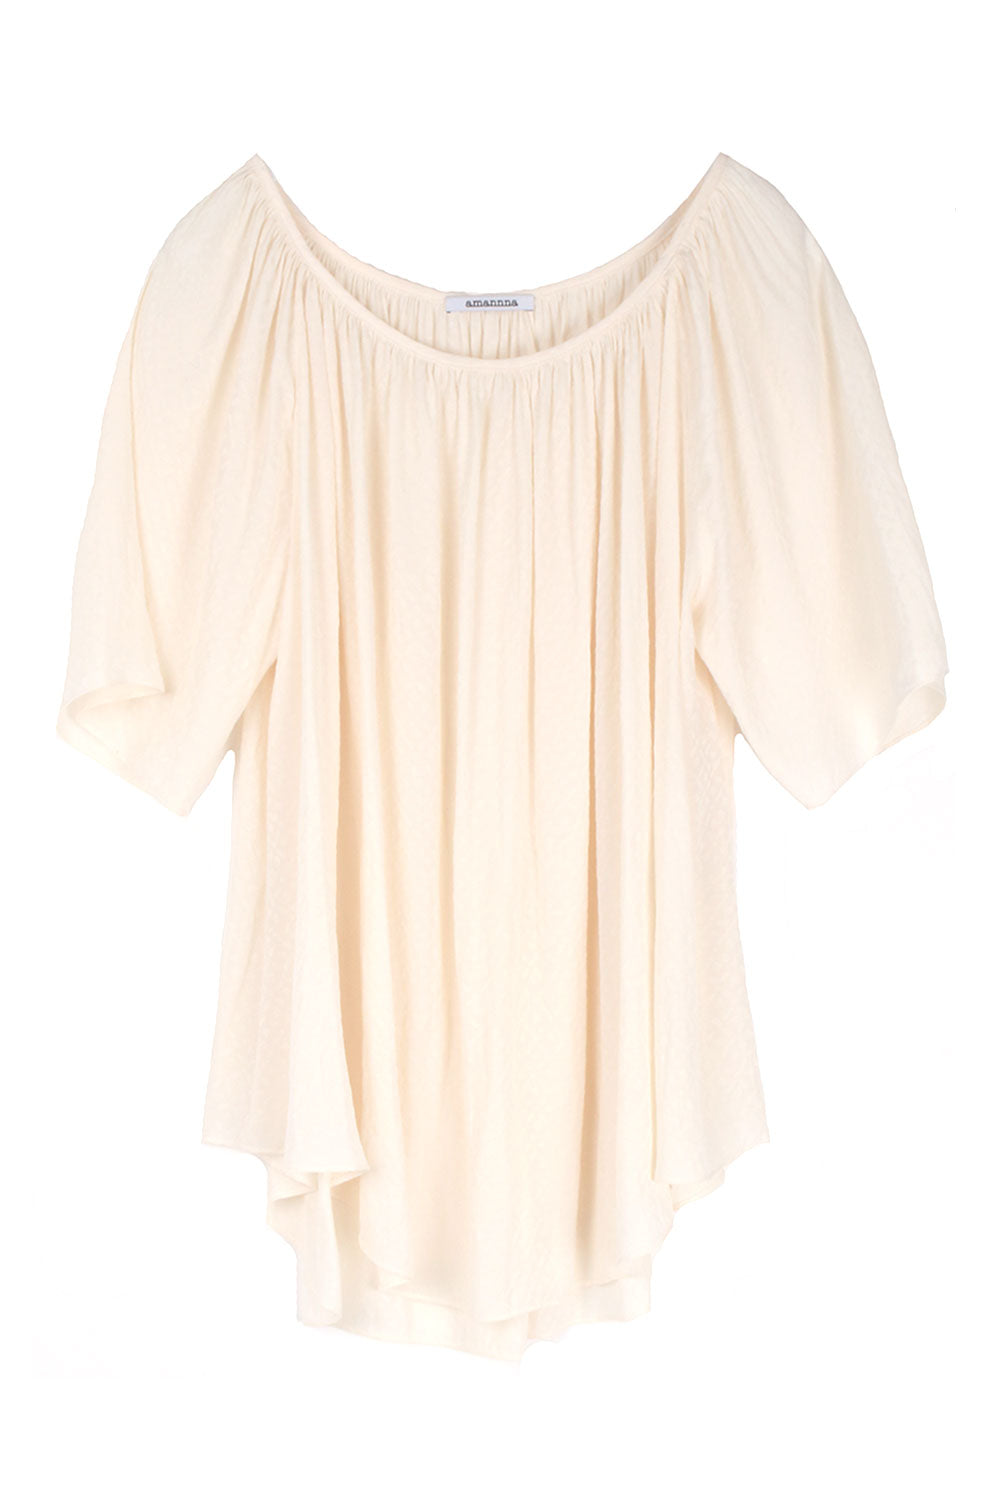 Icon Chalk Blouse